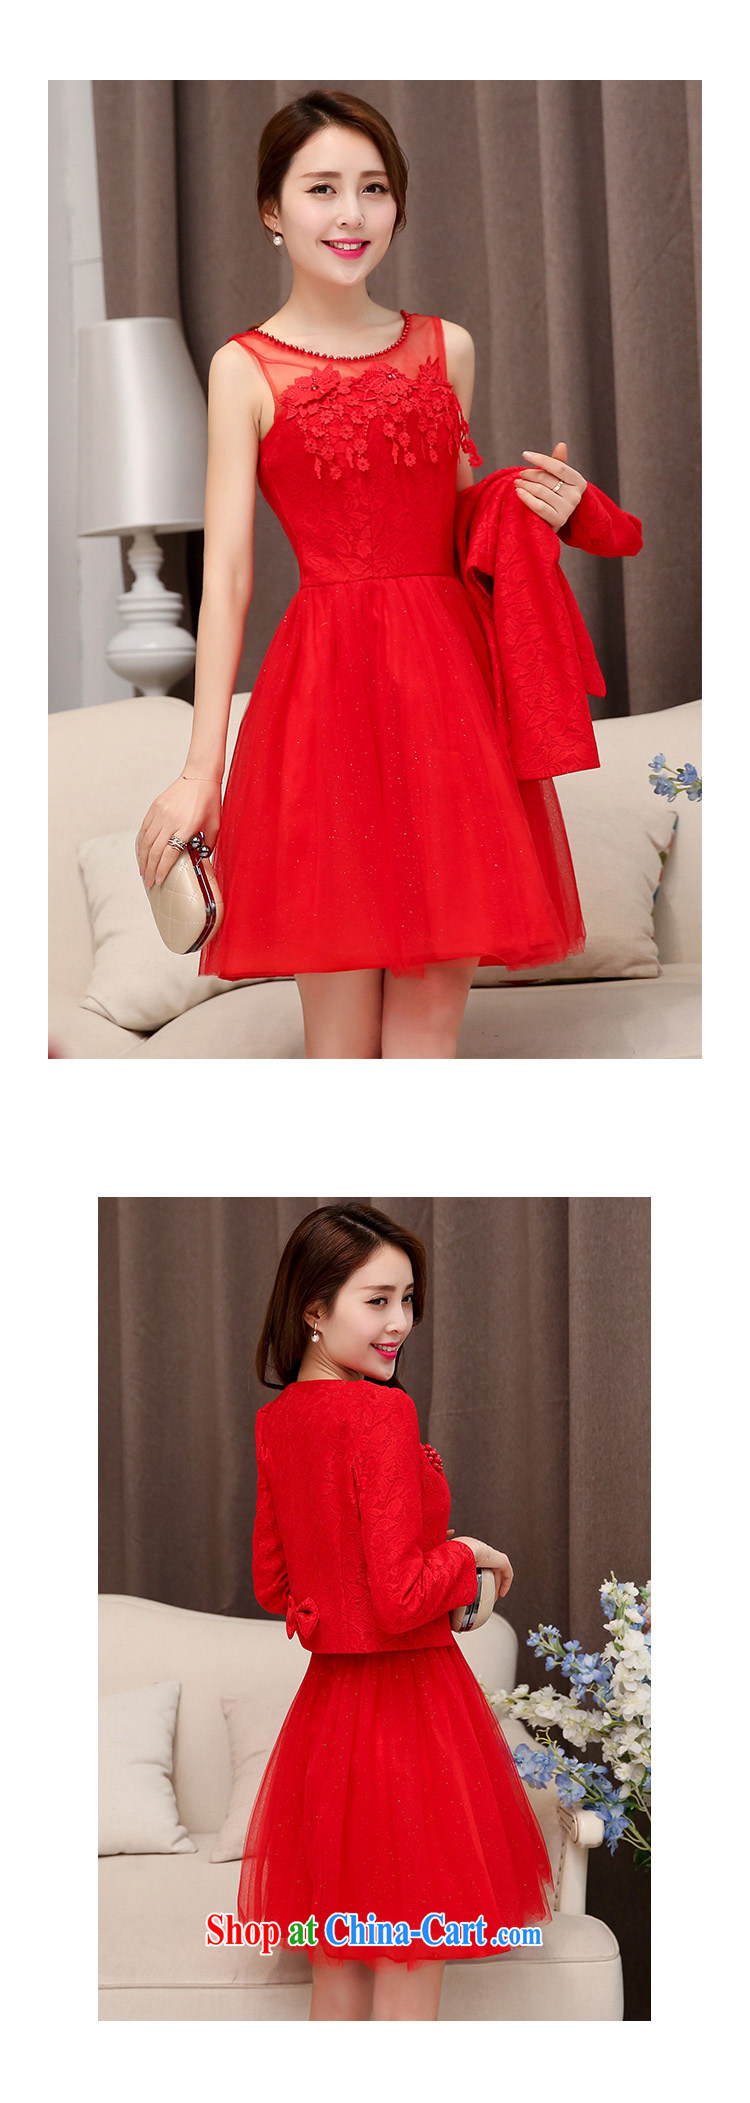 Cayman Business Gift Wedding Dress Girls Summer 2015 With New Korean Fashion Beauty Style Two Piece Bridal Gown Back Door Toast Bridesmaid With Two Piece Dresses Red Xxl,Wedding Dresses In Texas